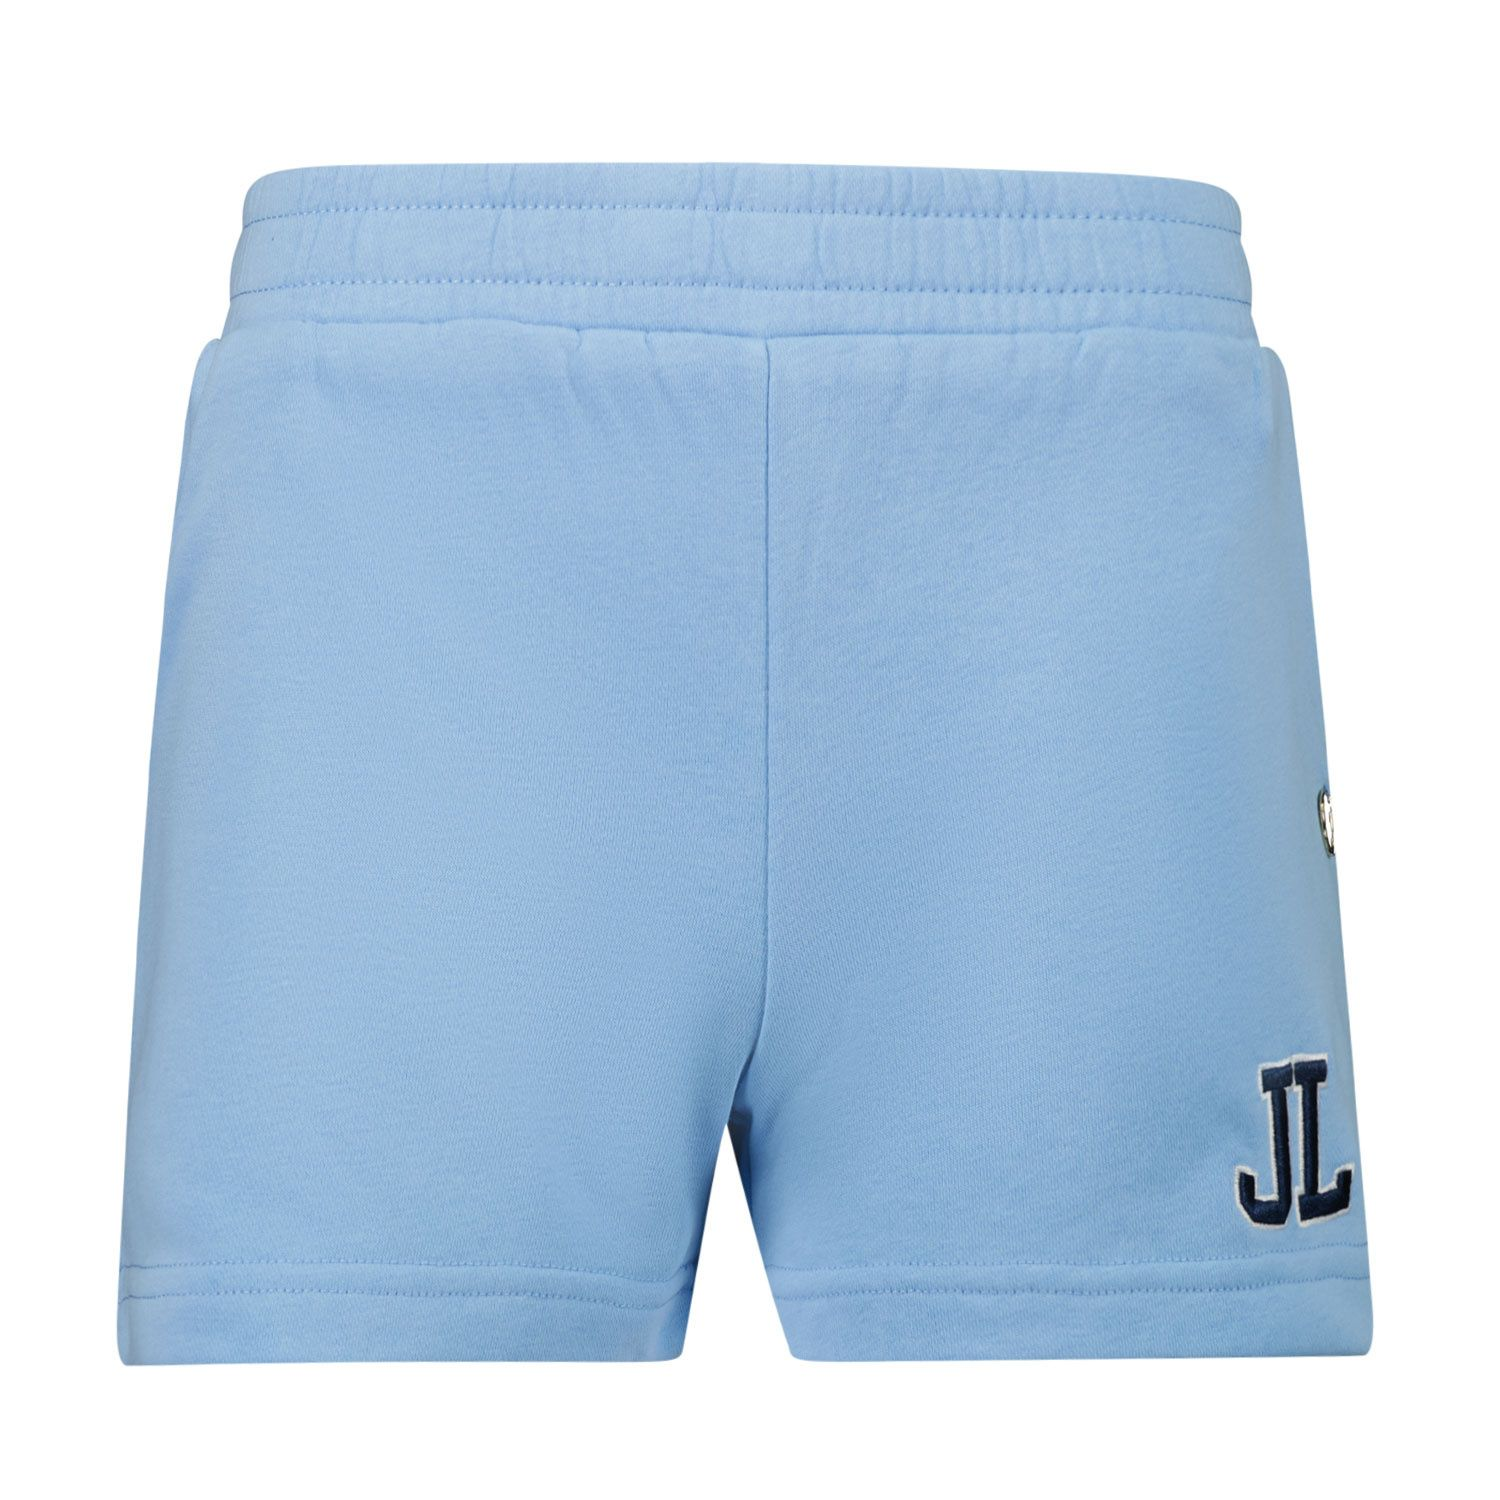 Picture of Jacky Girls JG210313 kids shorts light blue